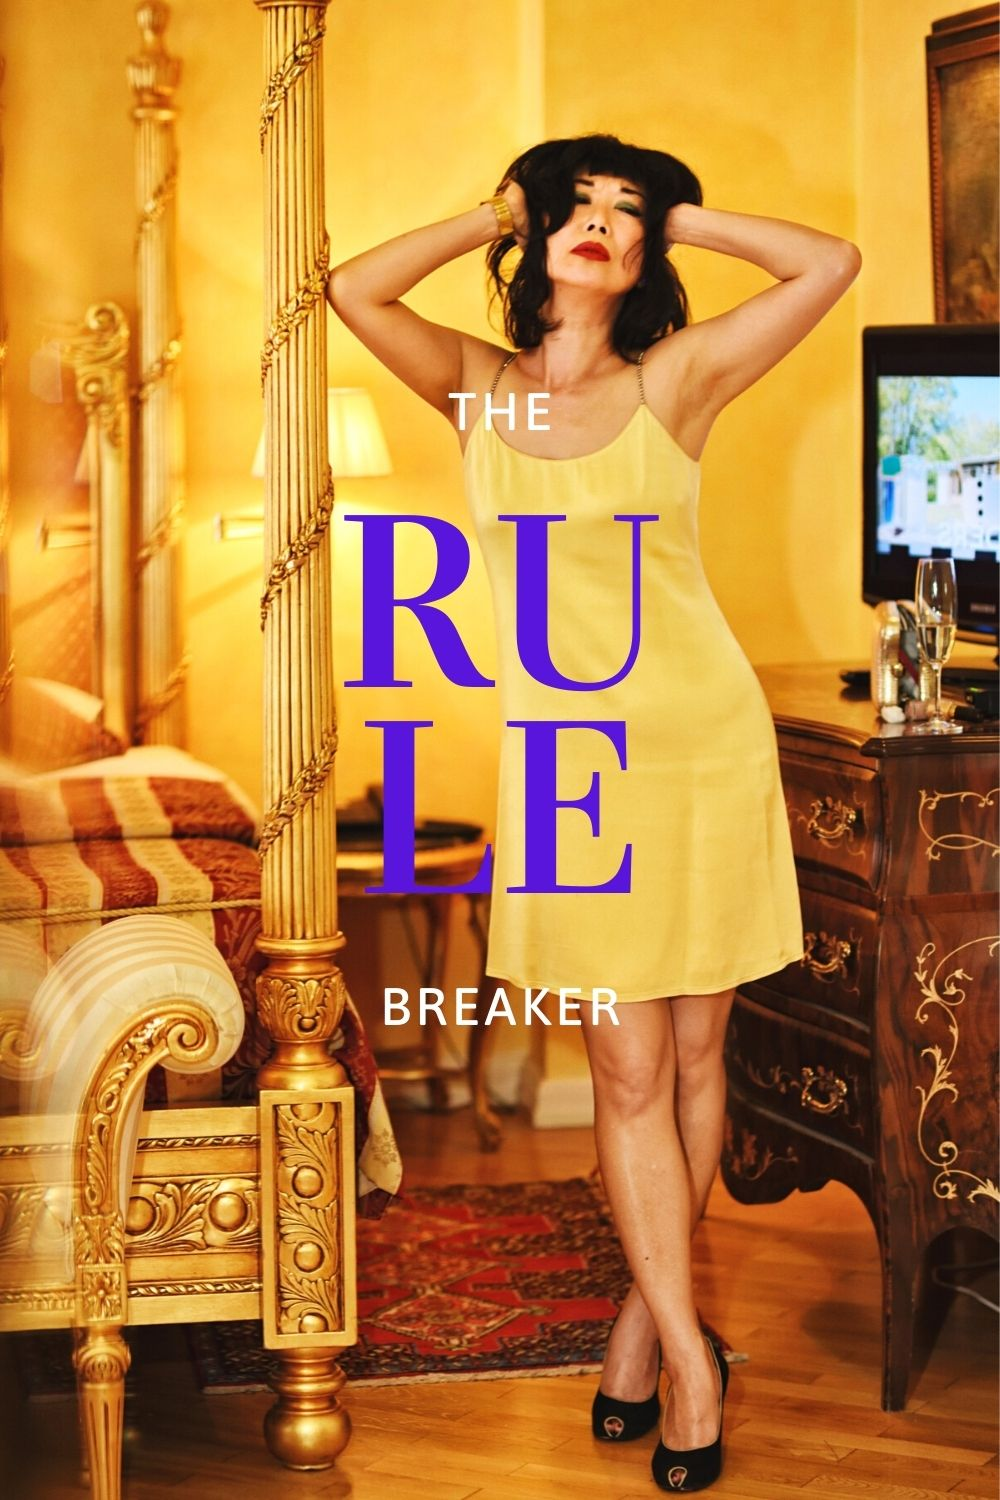 'The Rule Breaker' fashion story by White Caviar Life. Location shoot in a Baroque style luxury hotel suite in Prague by fashion photographer Kent Johnson.